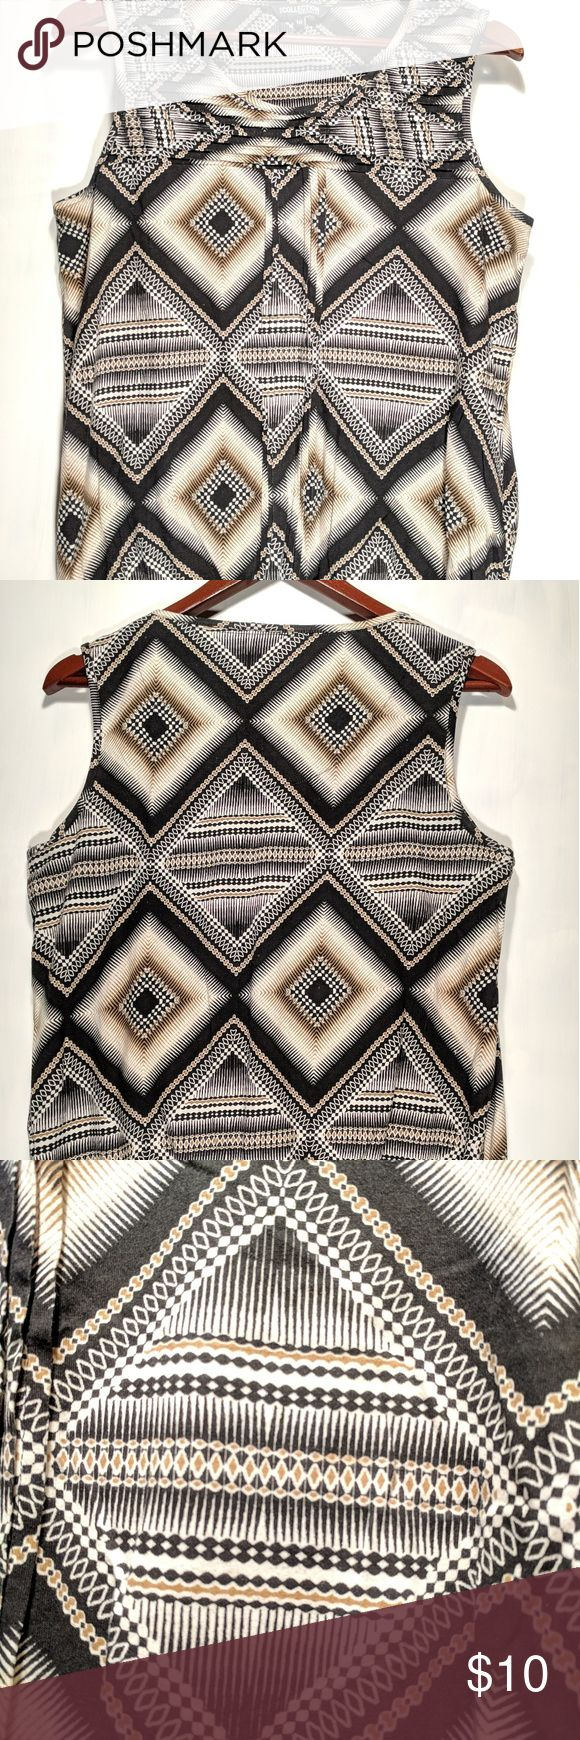 """Geometric sleeveless tank top Excellent condition, looks like it has never been worn. No signs of wear, stains or damage.  Cute geometric design with pleats for added style, and cinched in lower hem.   Please note this is a UK size 10, roughly equivalent to a U.S. Size 6/Small. Please review the measurements below to ensure this will fit you as desired. Arm pit to arm pit =19.5"""". Mid shoulder to lower hem = 24"""". Across lower hem = 14"""" with easily another 8"""" in stretch. debenhams collection…"""